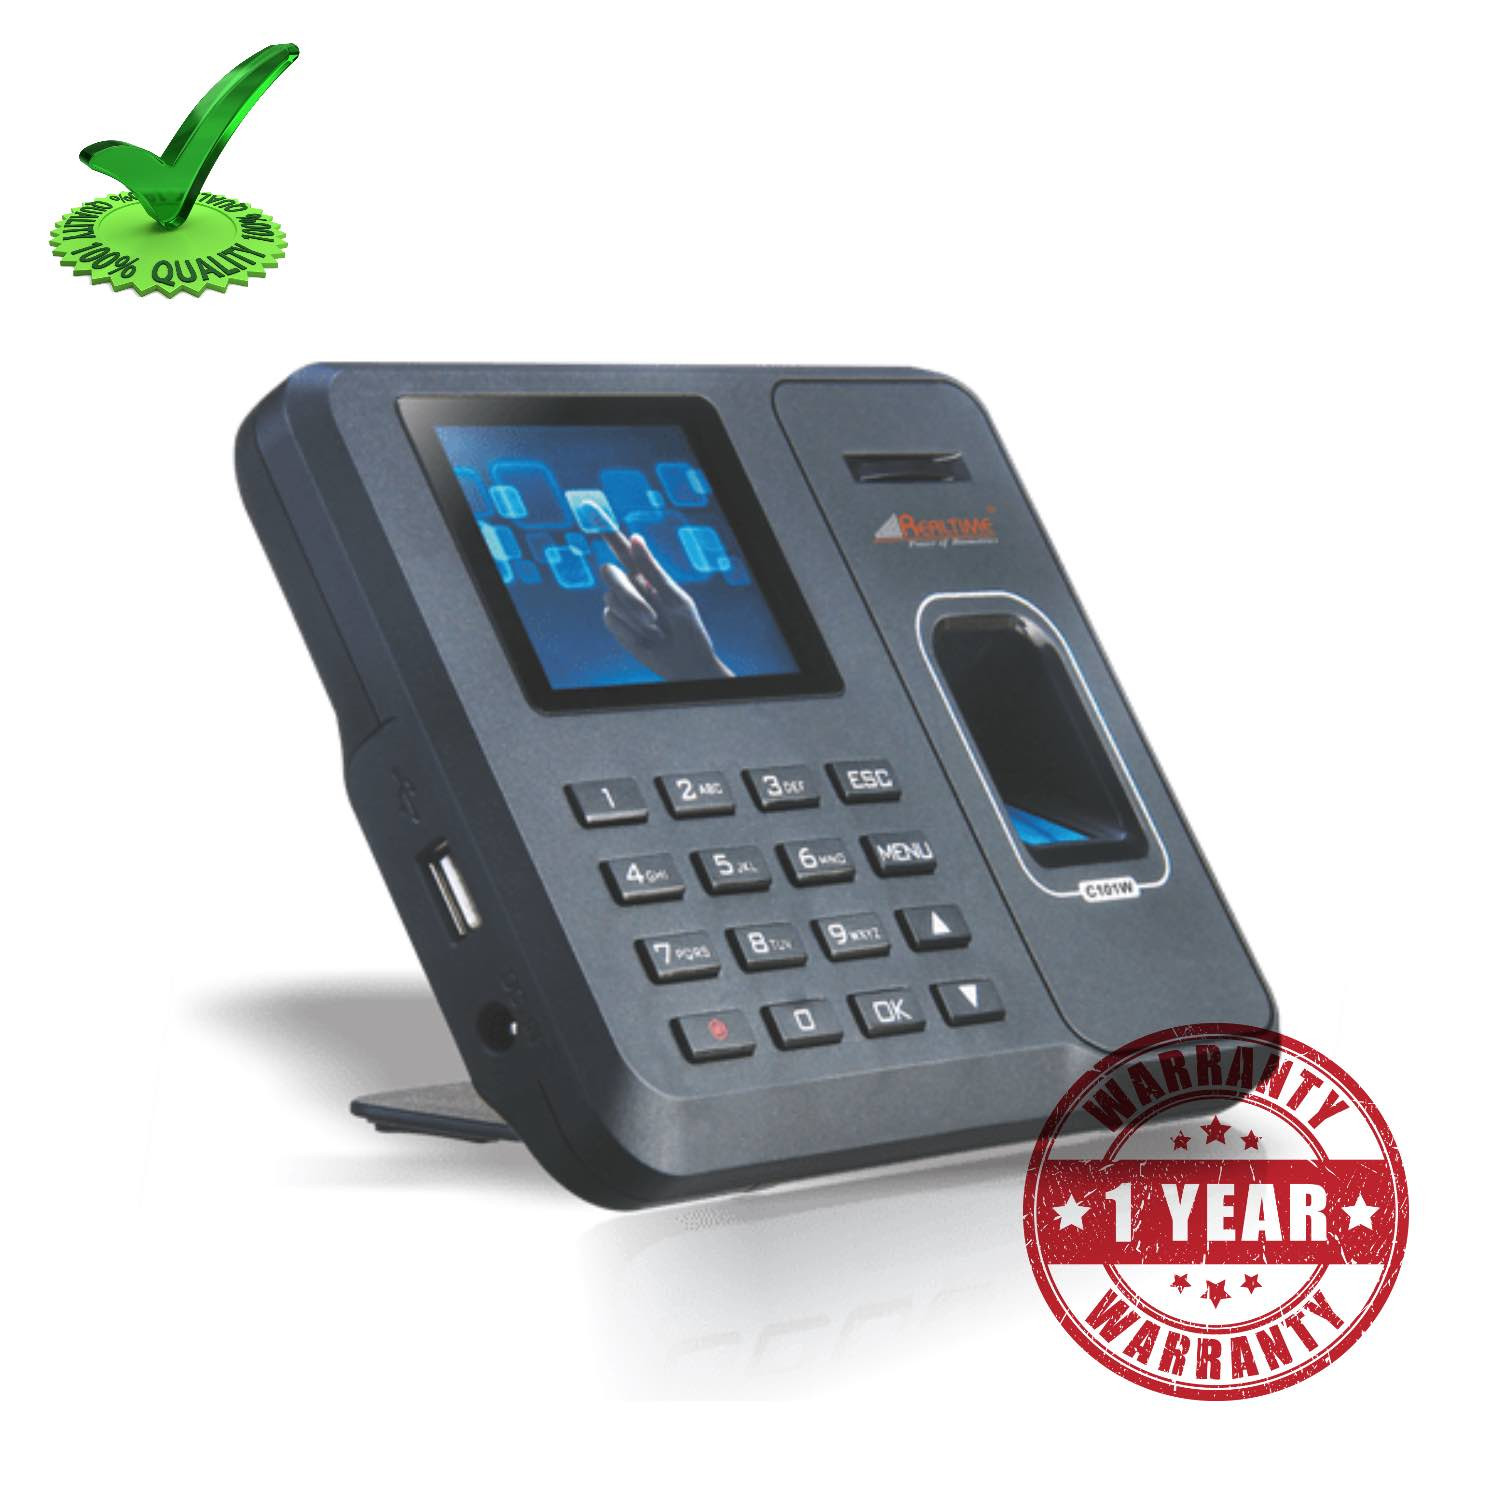 Realtime C101W Finger Print WiFi Time Attendance Systems